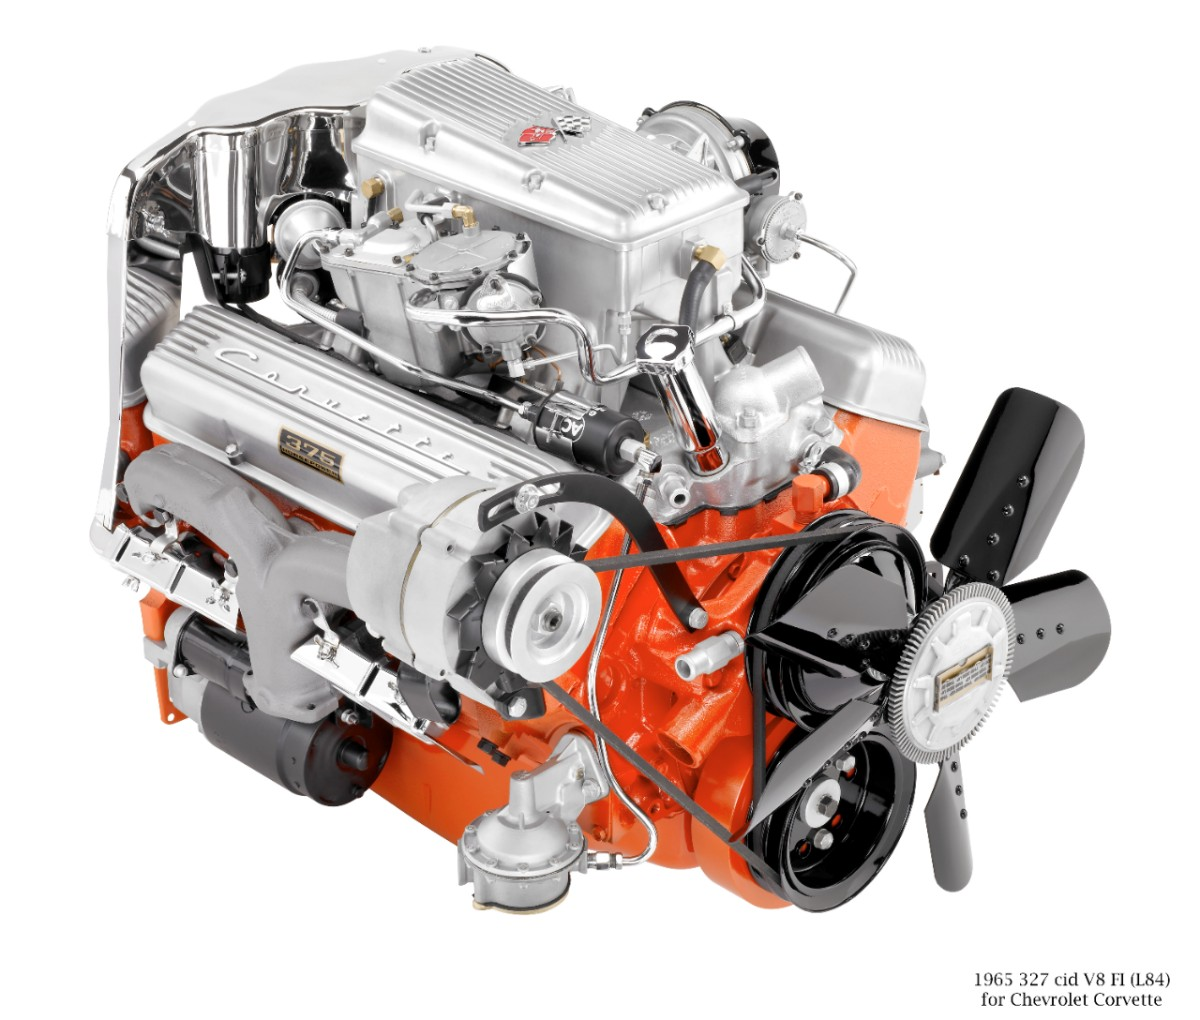 Corvette Small Block V-8s: A Brief History